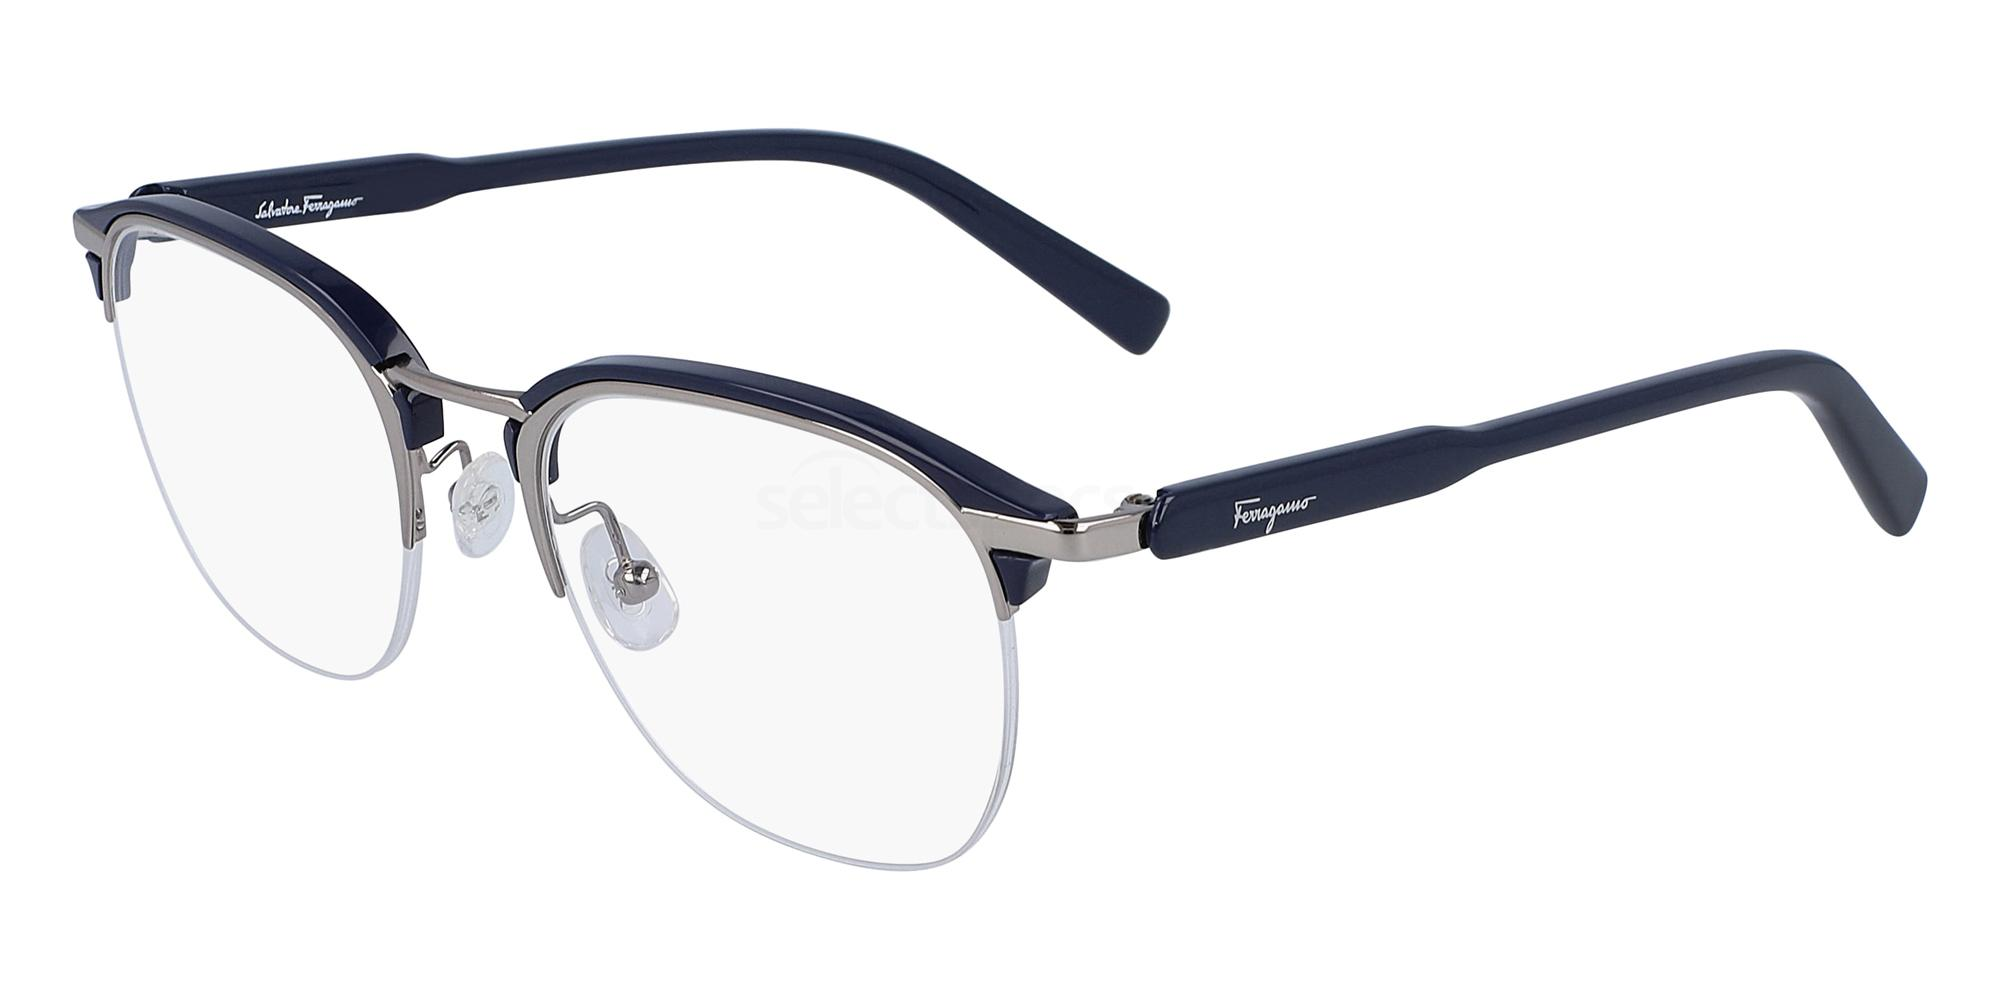 082 SF2180 Glasses, Salvatore Ferragamo